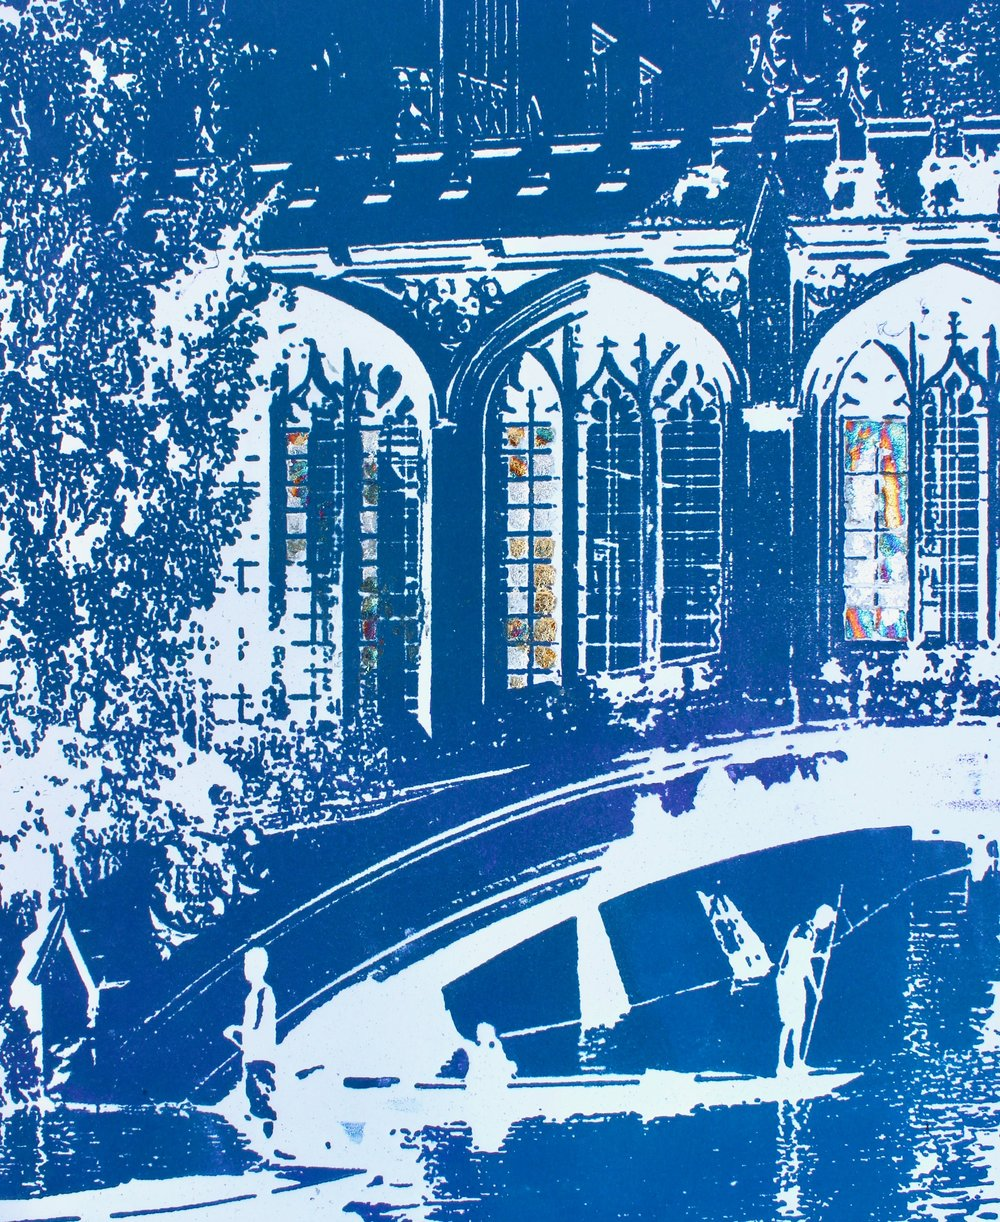 Sighing in Cambridge ed21   solar plate etching   SOLD